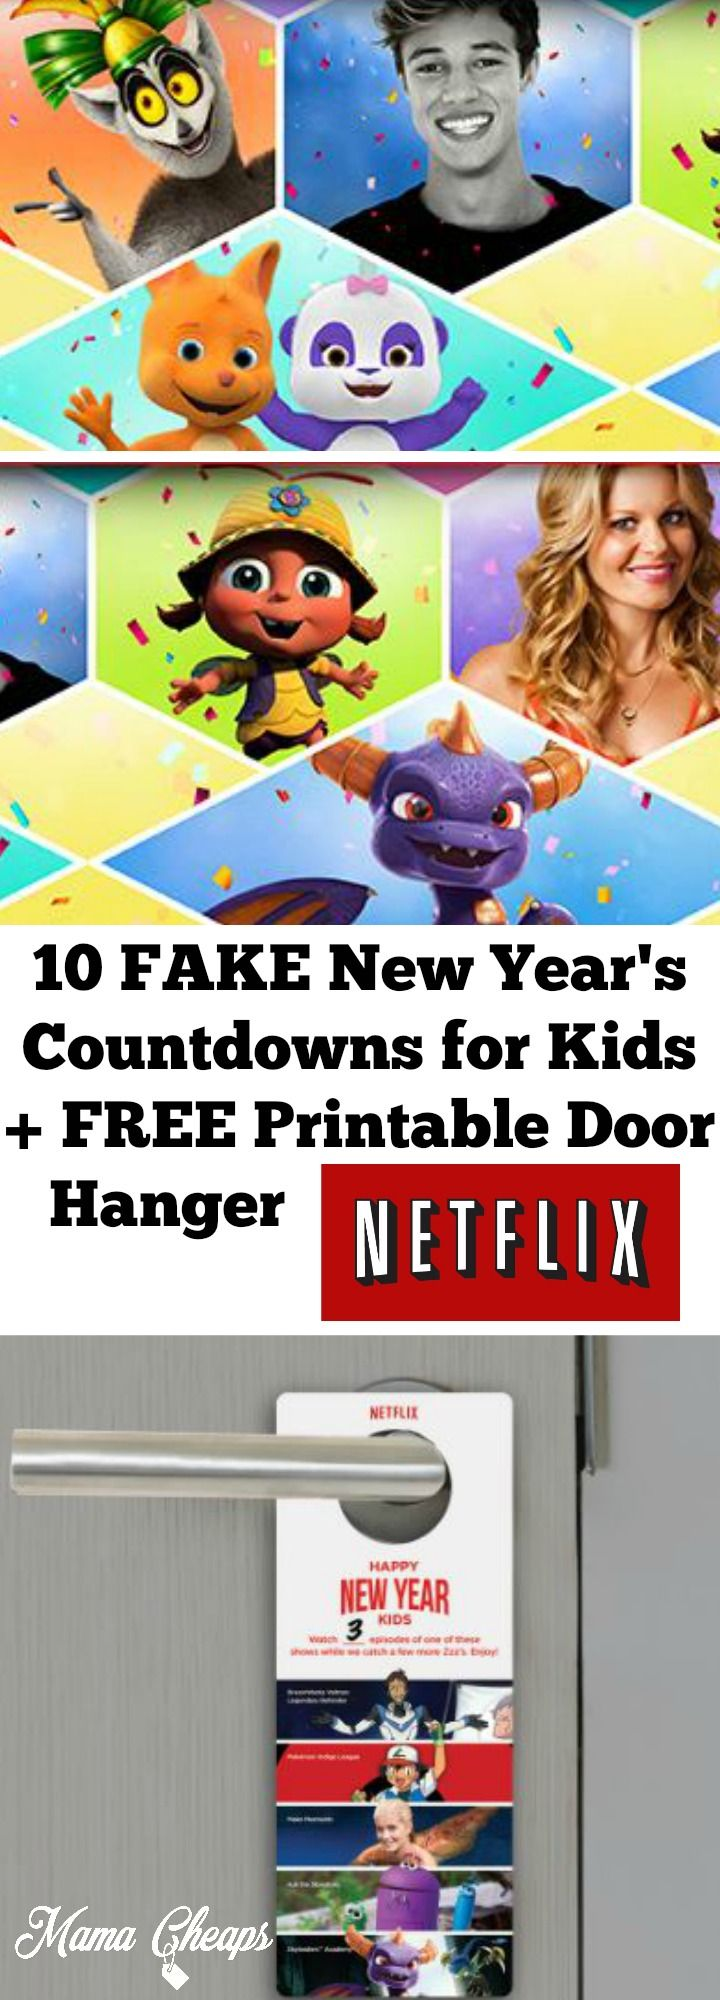 10 New Year's Countdowns from Netflix to Totally Fake Out the Kids and Get Them in Bed Before Midnight from @MamaCheaps http://bit.ly/2hV4tSy